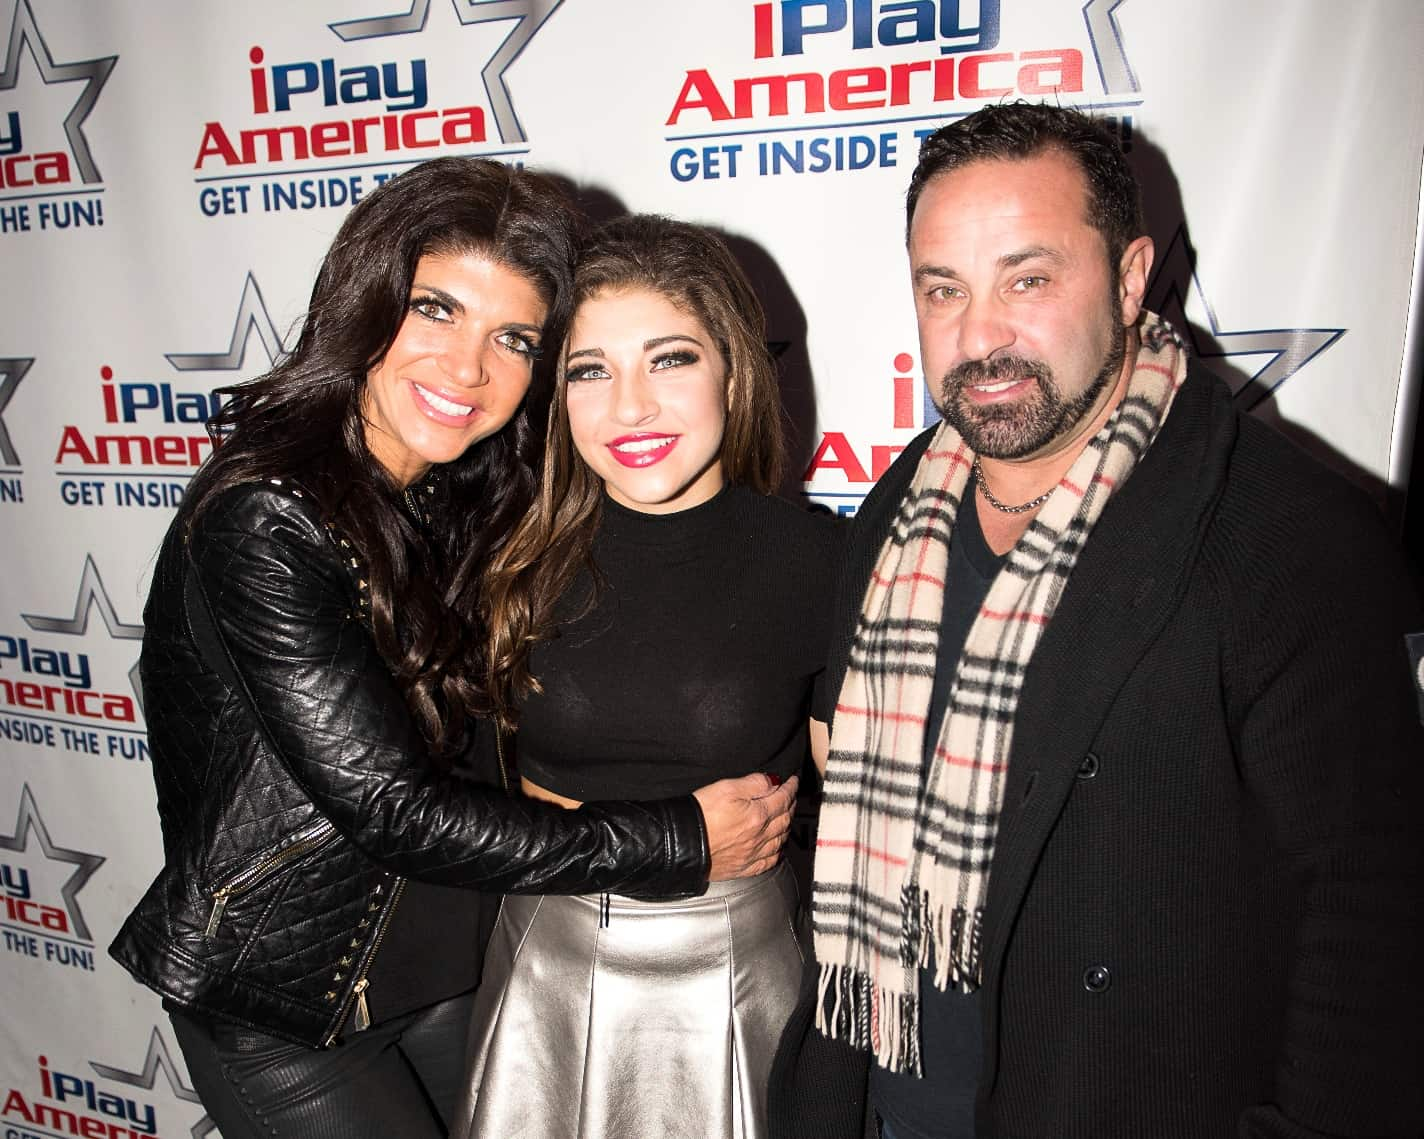 RHONJ's Teresa Giudice Asks For Prayers So Joe Can See Daughter Gia Graduate